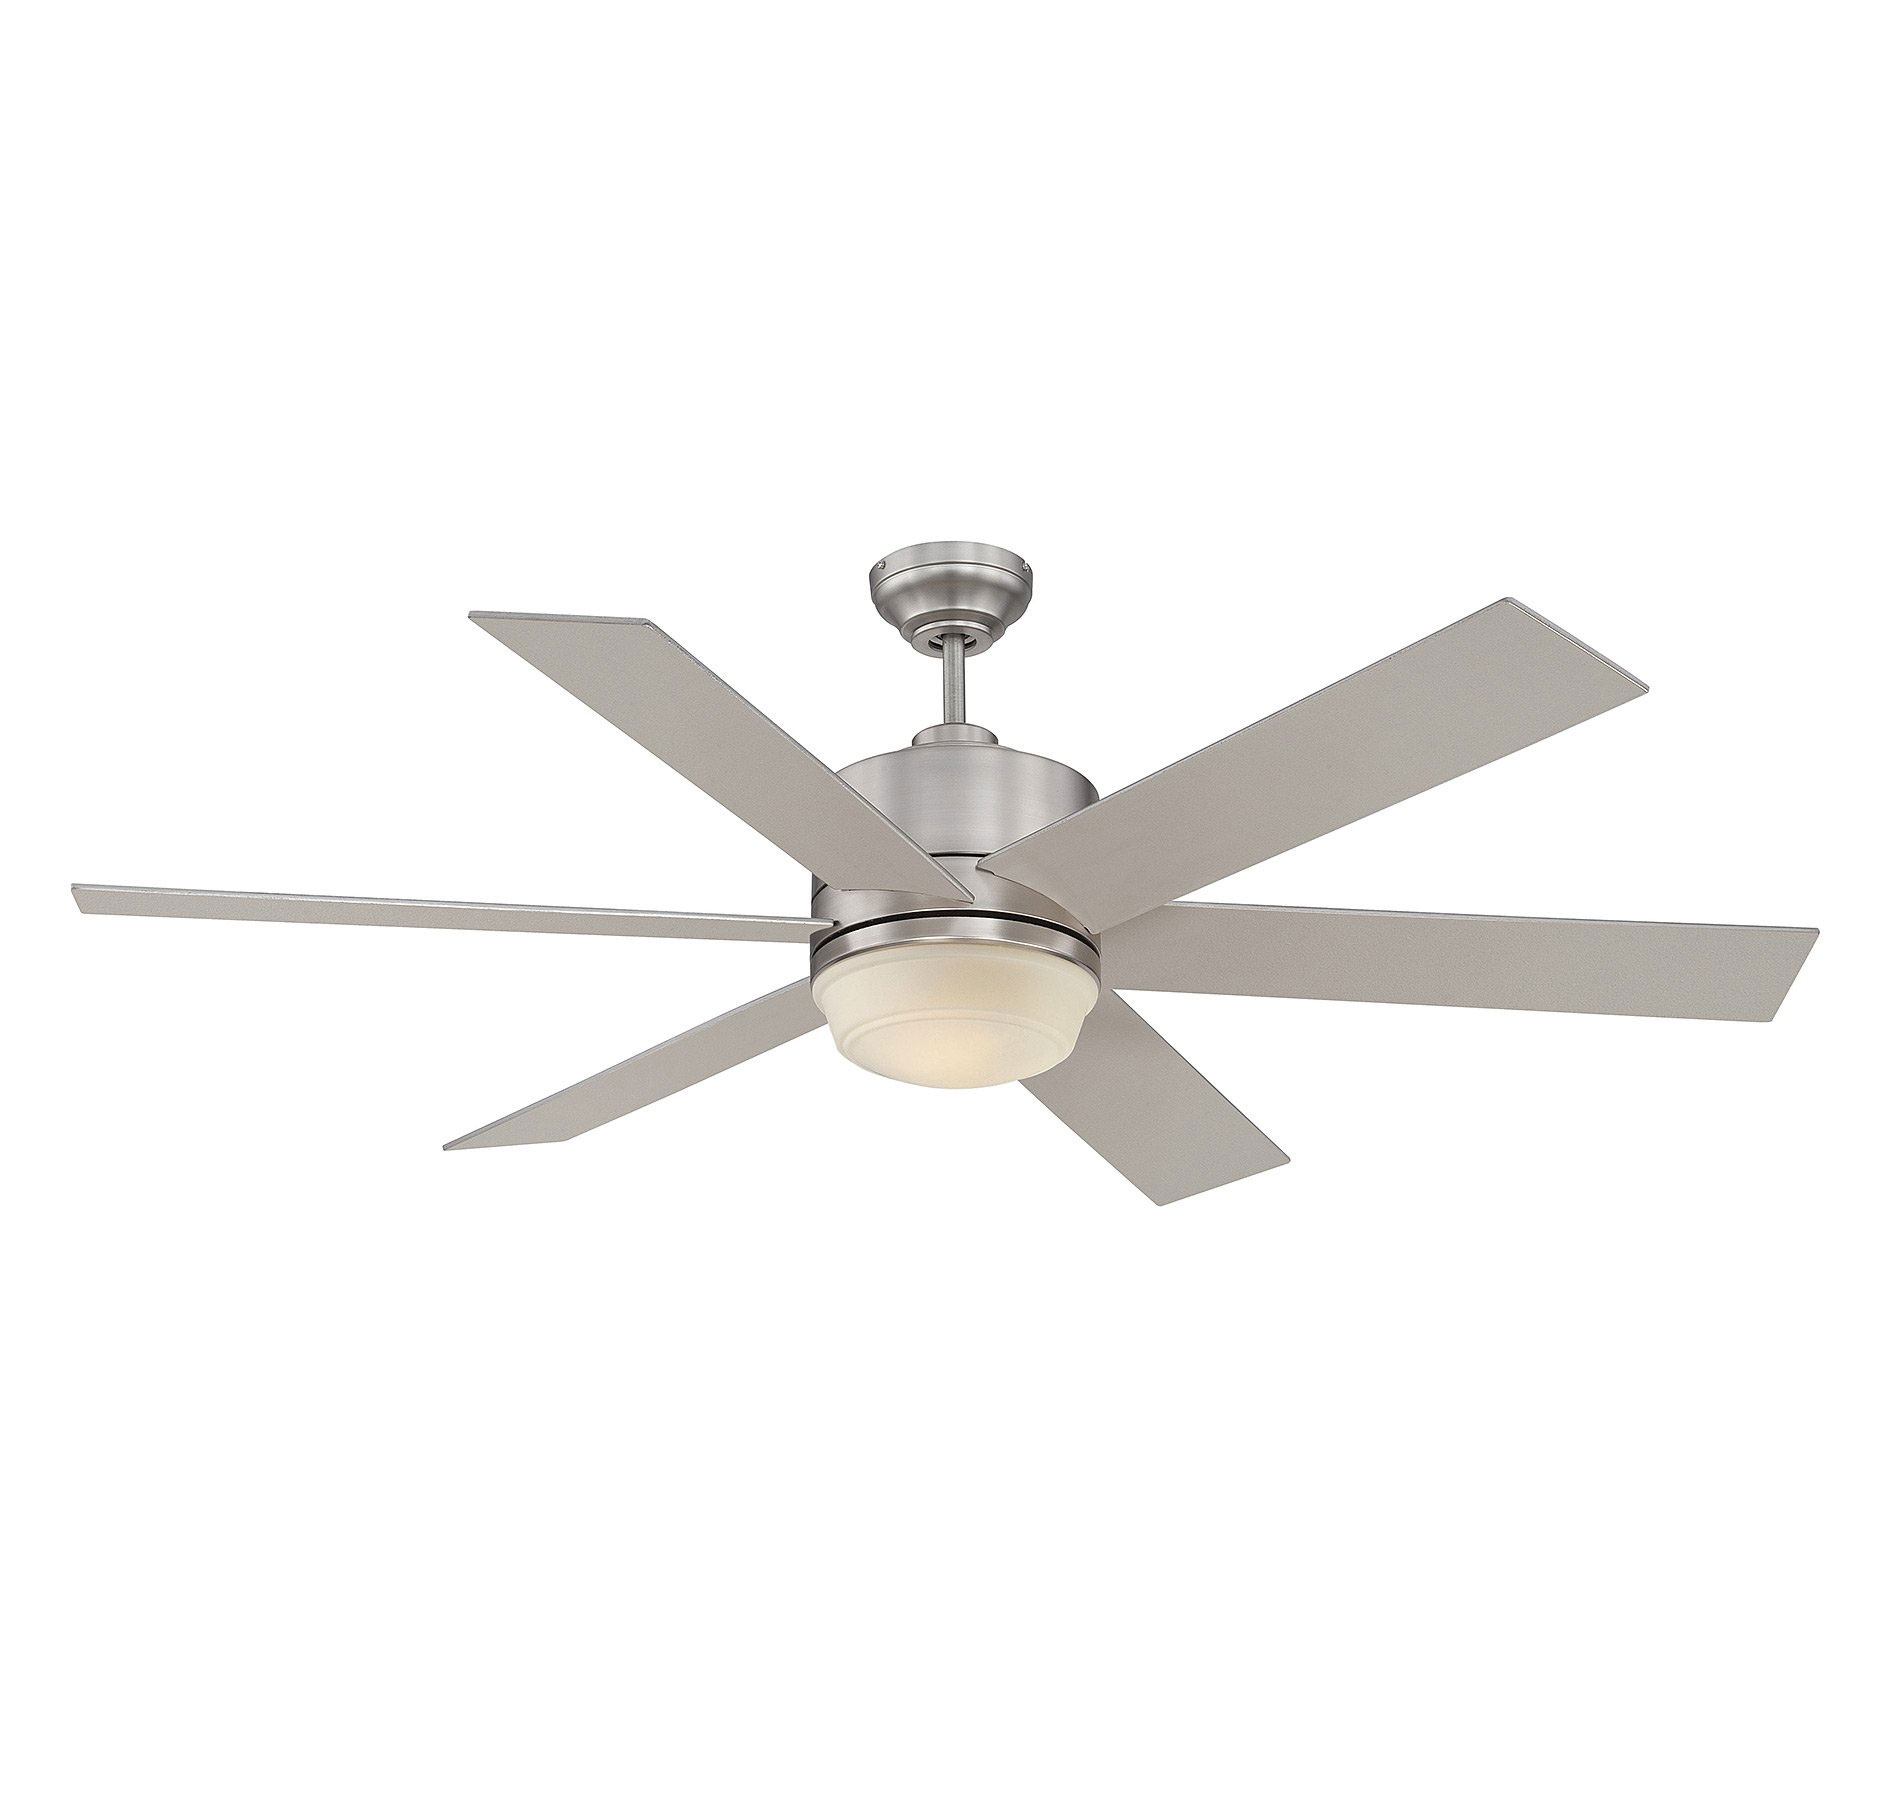 Ceiling Fan by Savoy House